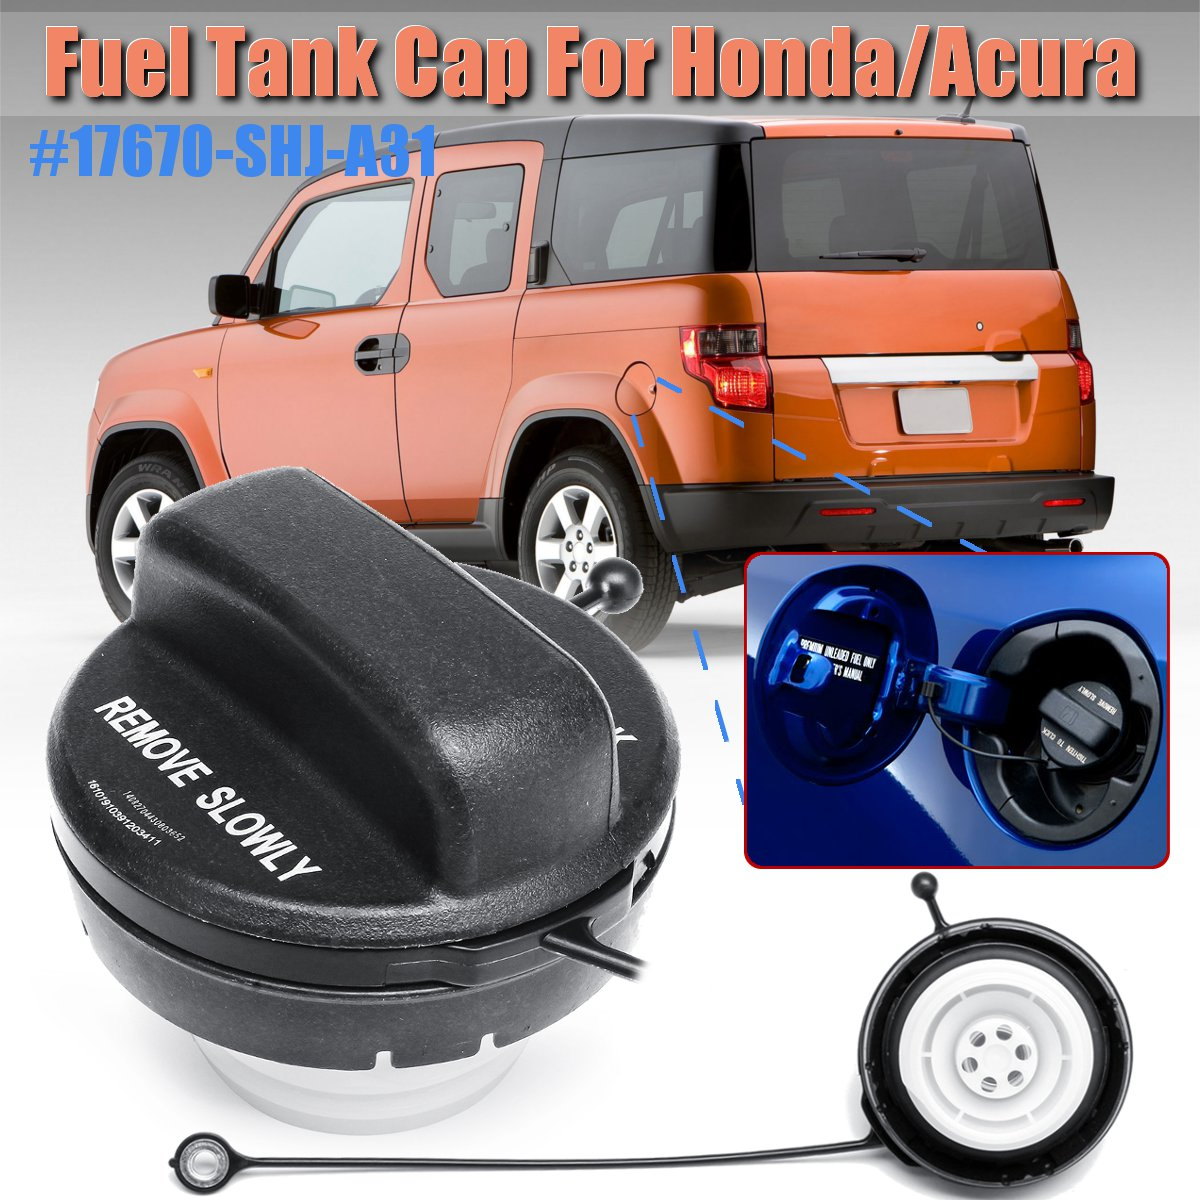 Tank Covers Just 17670-shj-a31 Fuel Gas Petrol Filler Tank Cap For Honda For Cr-v Pilot Ridgeline S2000 For Acura Tsx Tl Rsx Mdx Lovely Luster Automobiles & Motorcycles